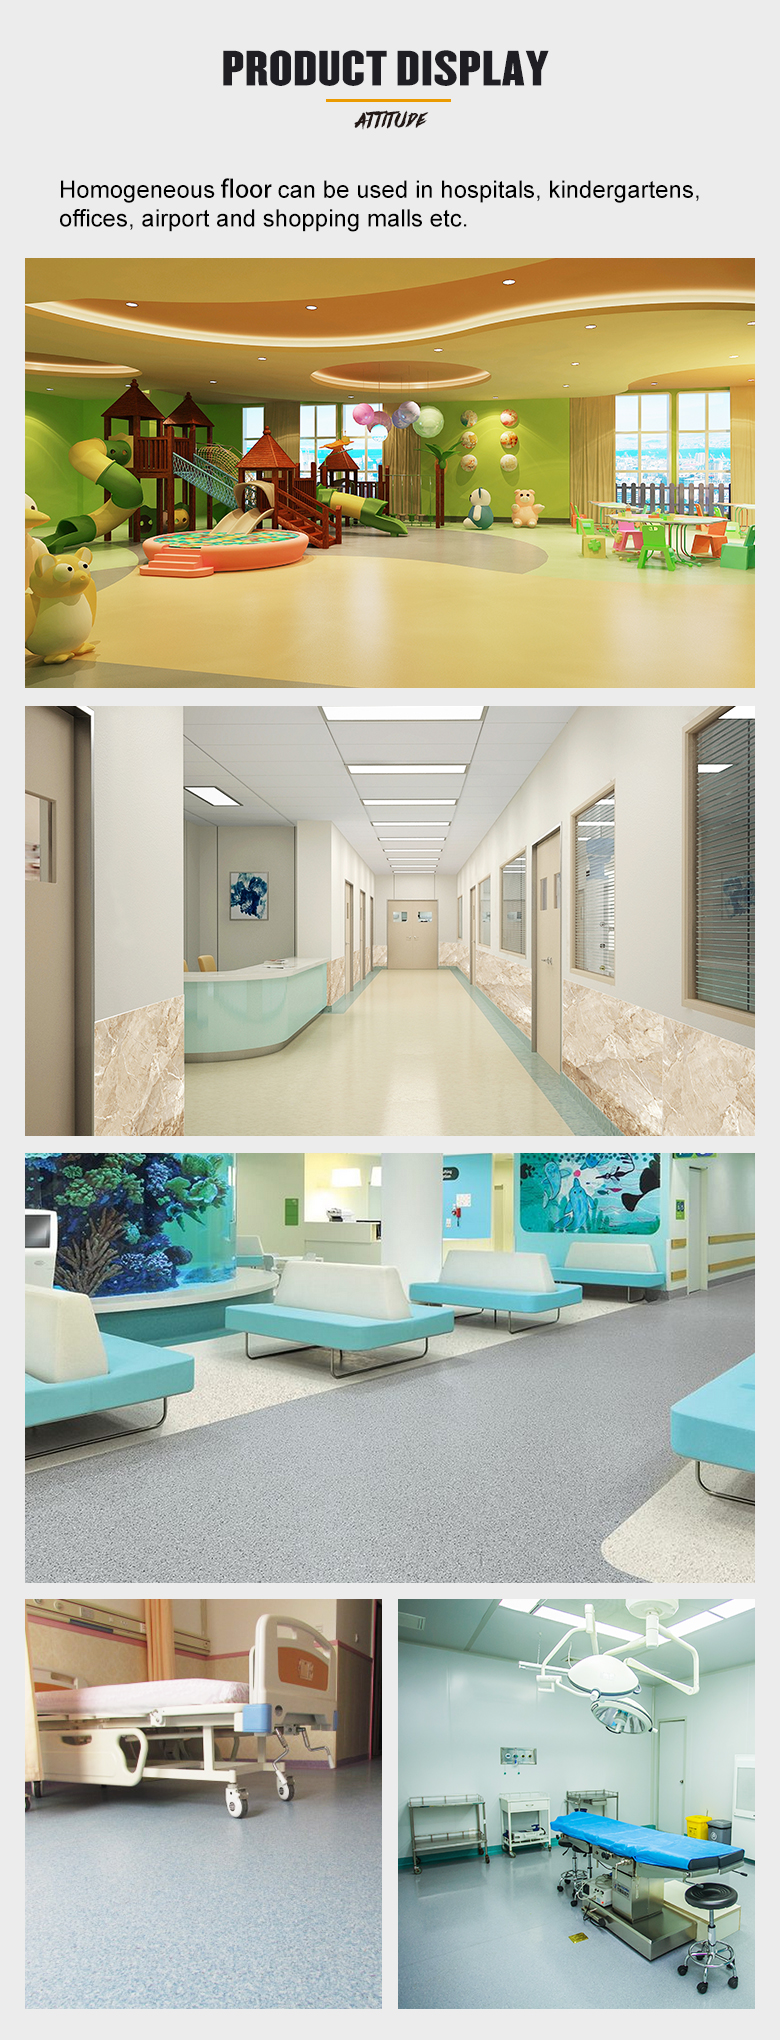 Fireproof Homogenous flooring water resistance for comercial usage